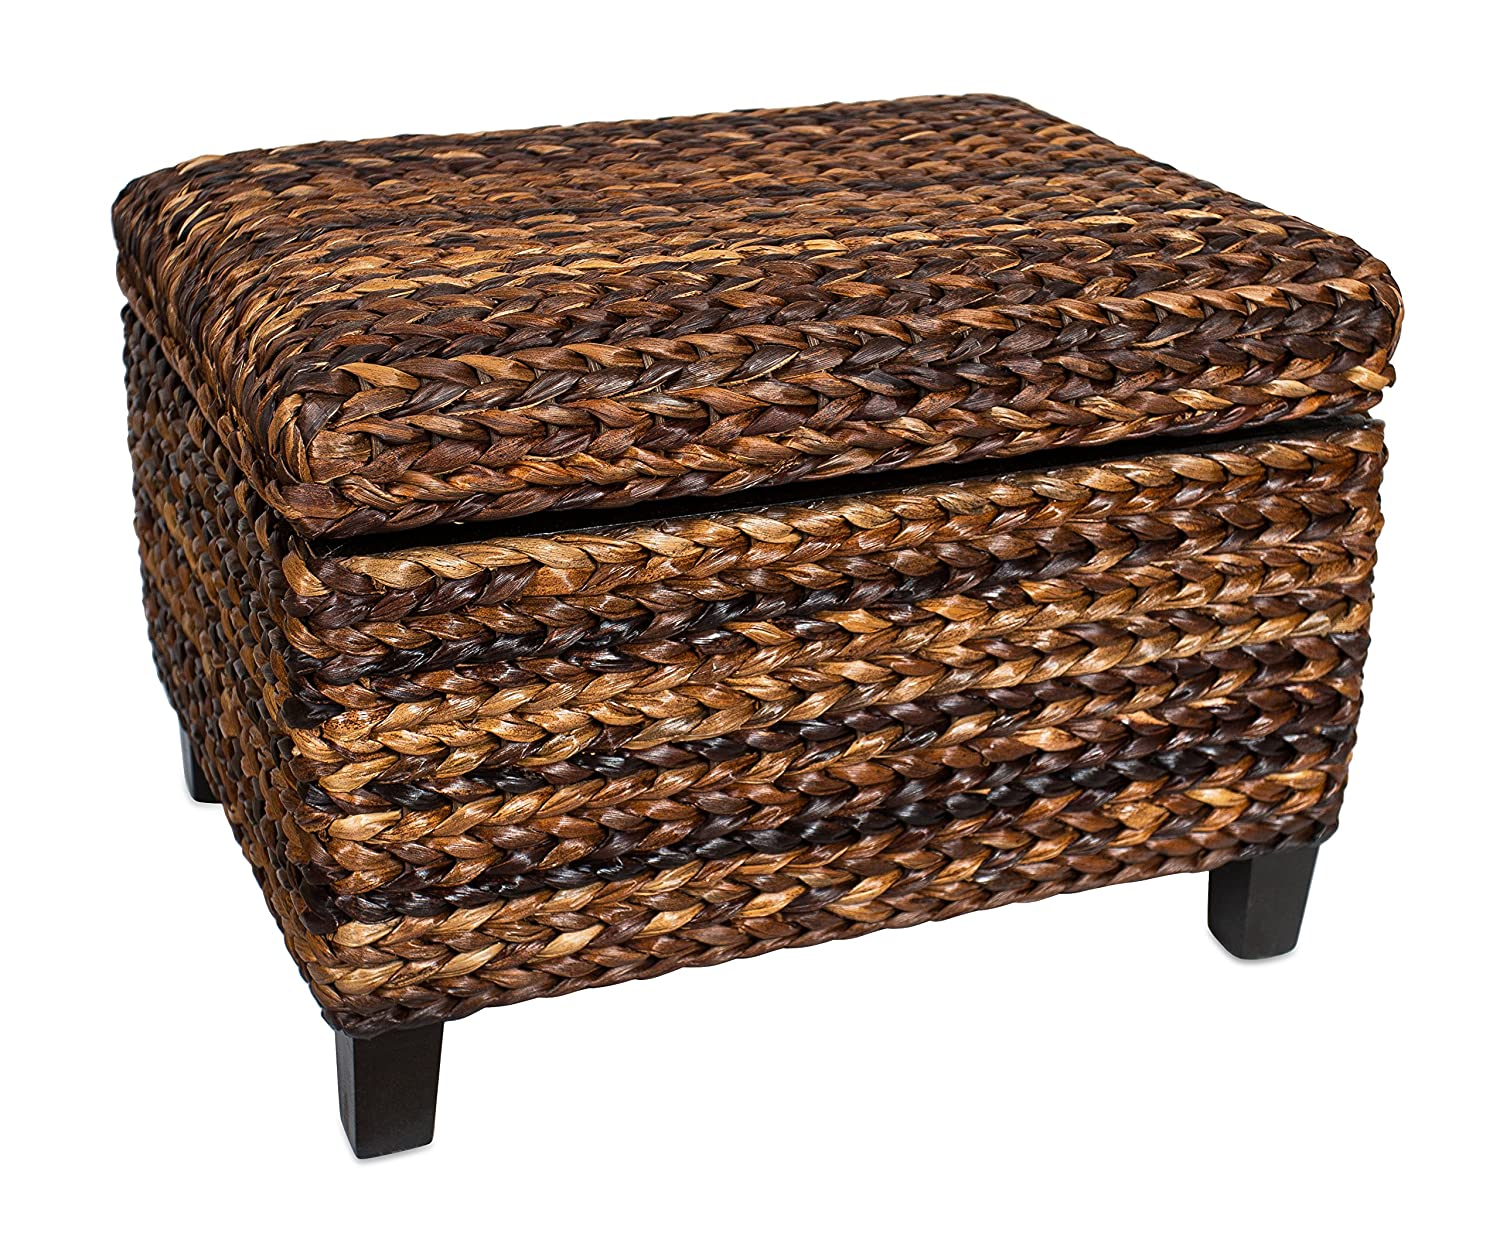 Phenomenal Birdrock Home Woven Seagrass Storage Ottoman With Safety Hinges Lamtechconsult Wood Chair Design Ideas Lamtechconsultcom